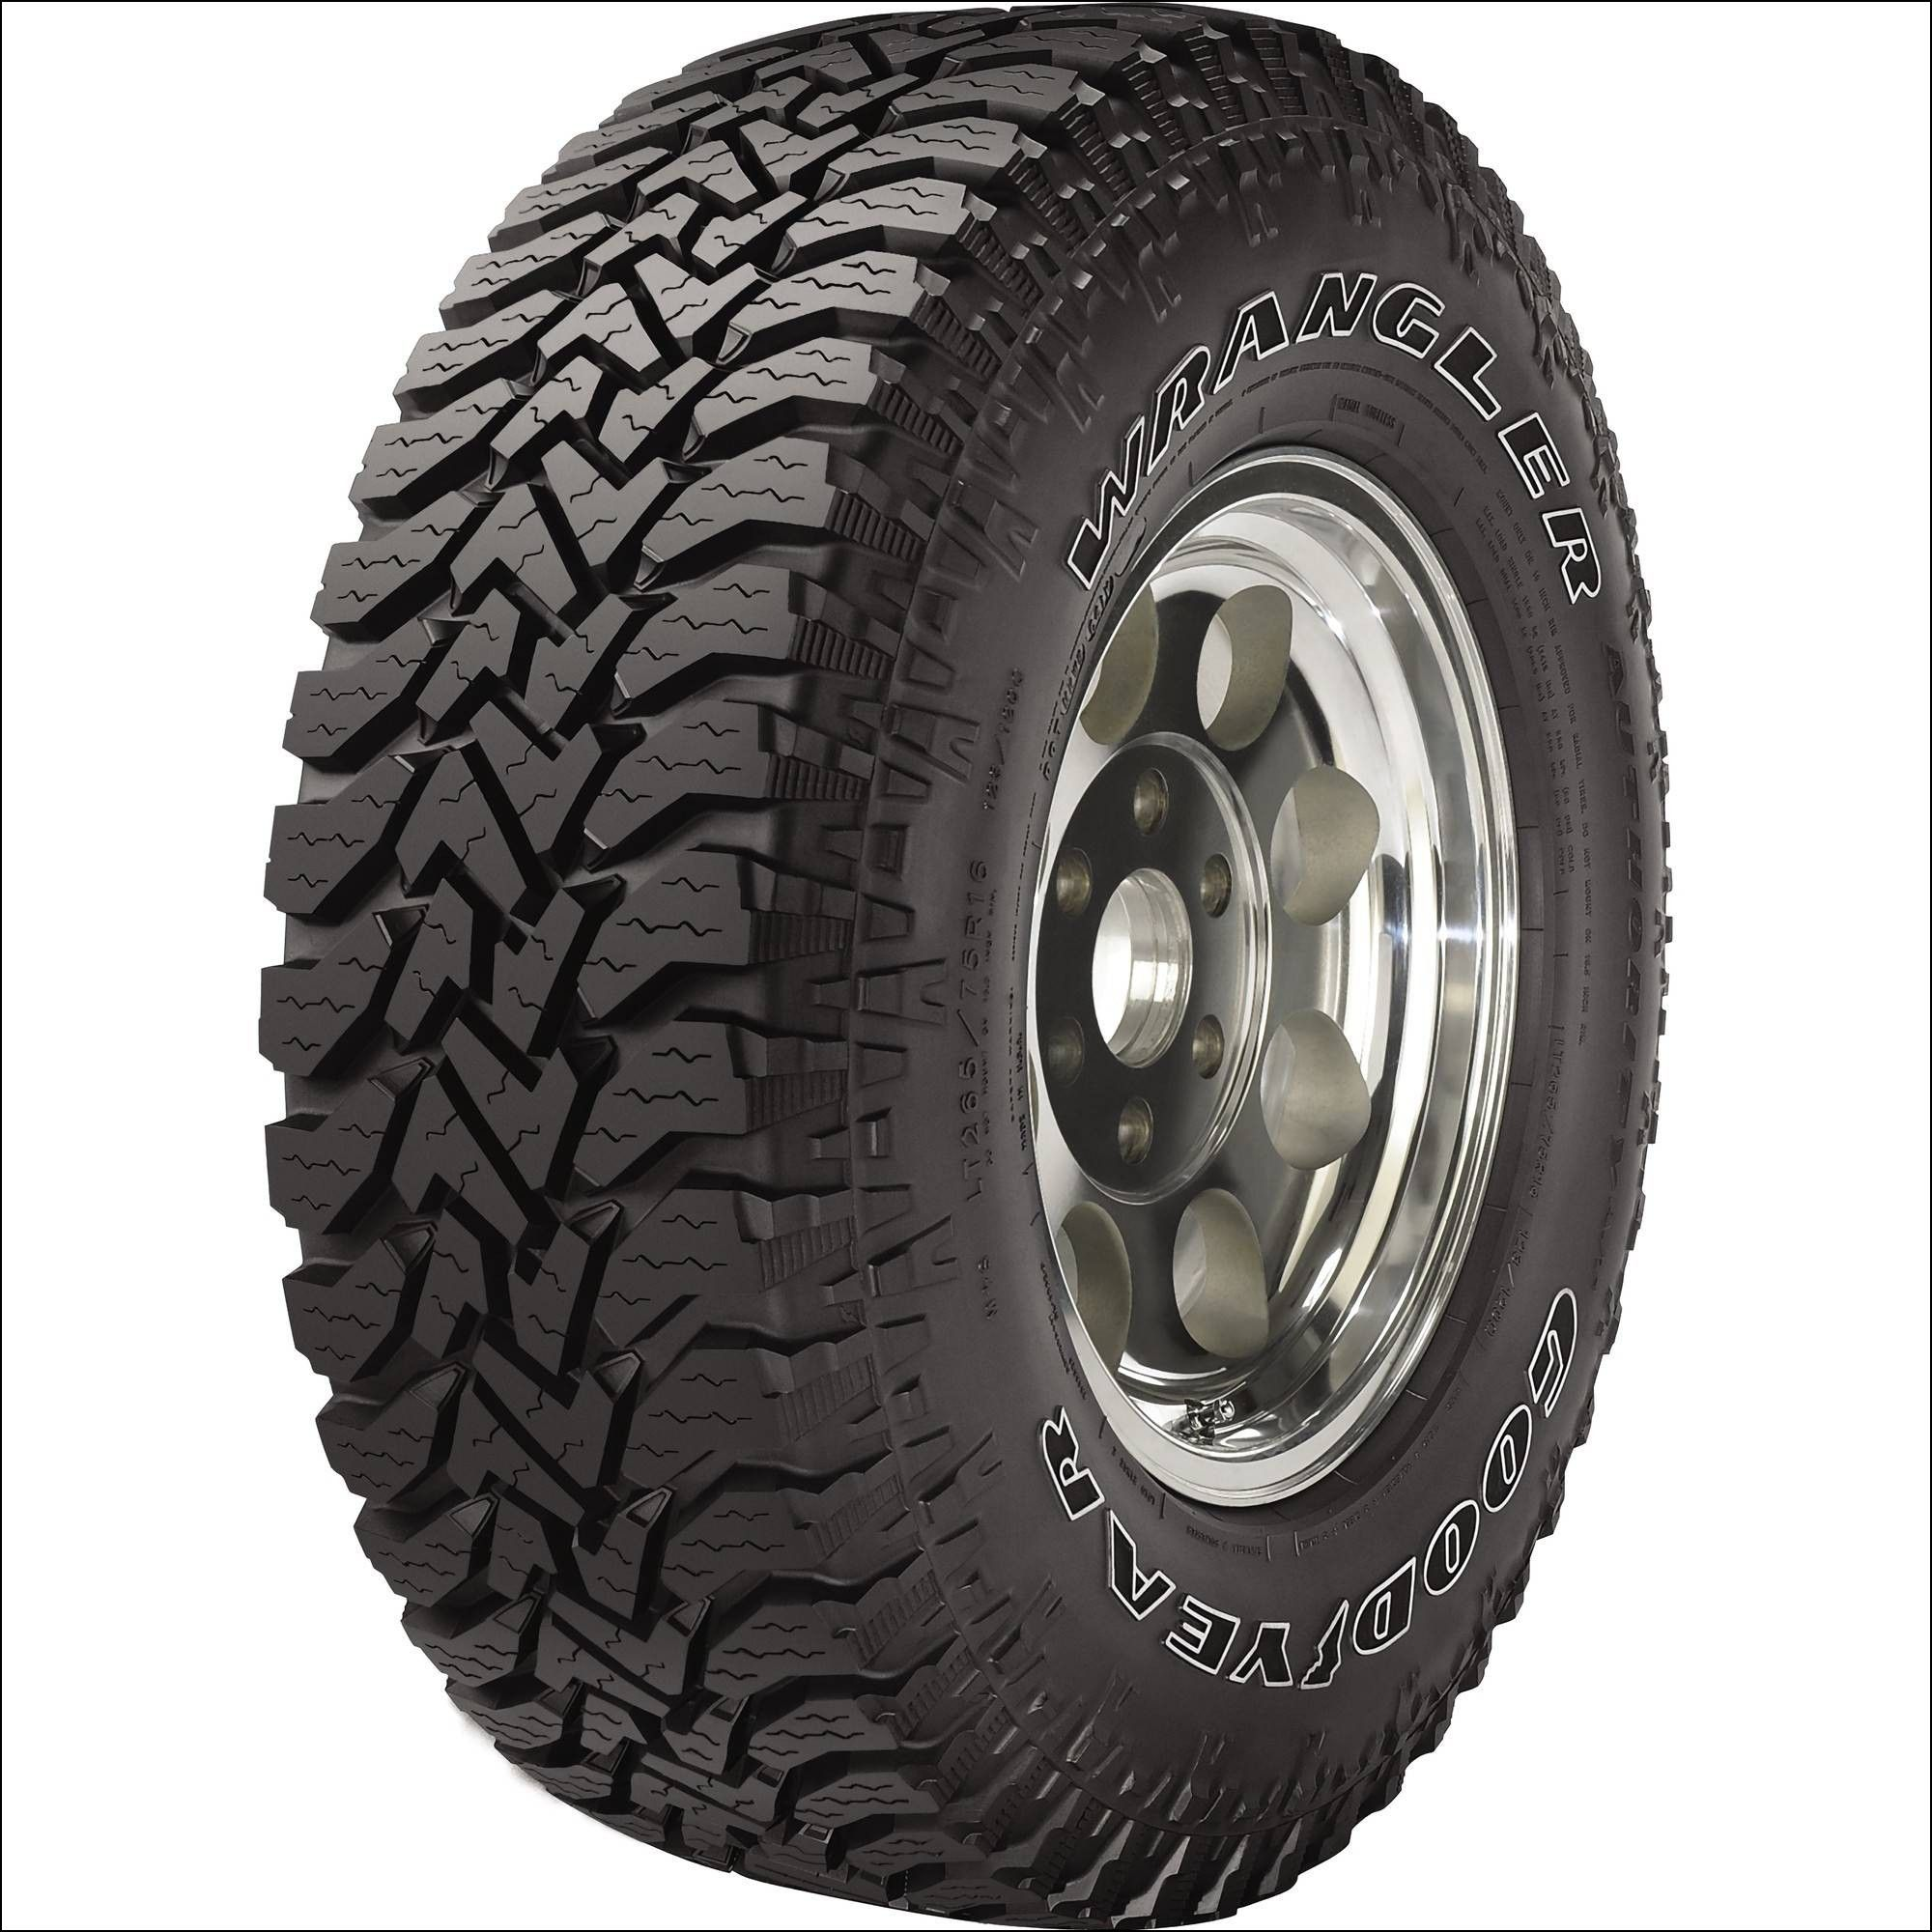 Goodyear Tire Sales Promotions